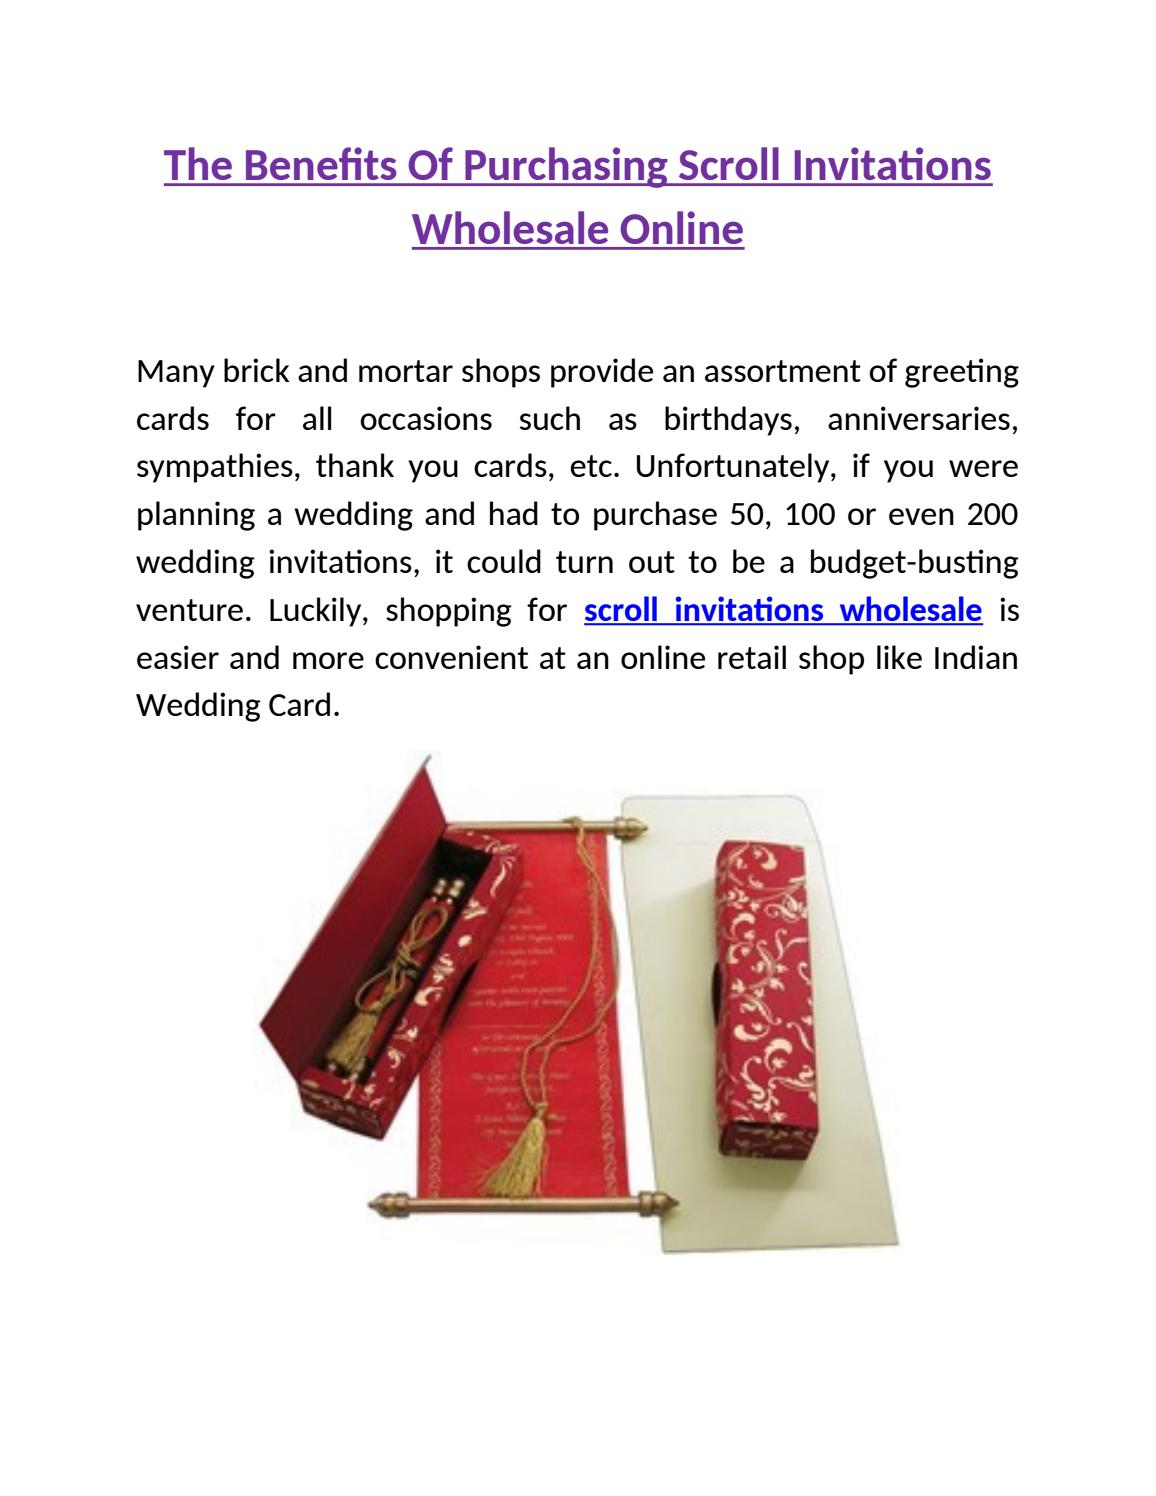 Scroll Invitations Wholesale Online by Indian Wedding Card - issuu